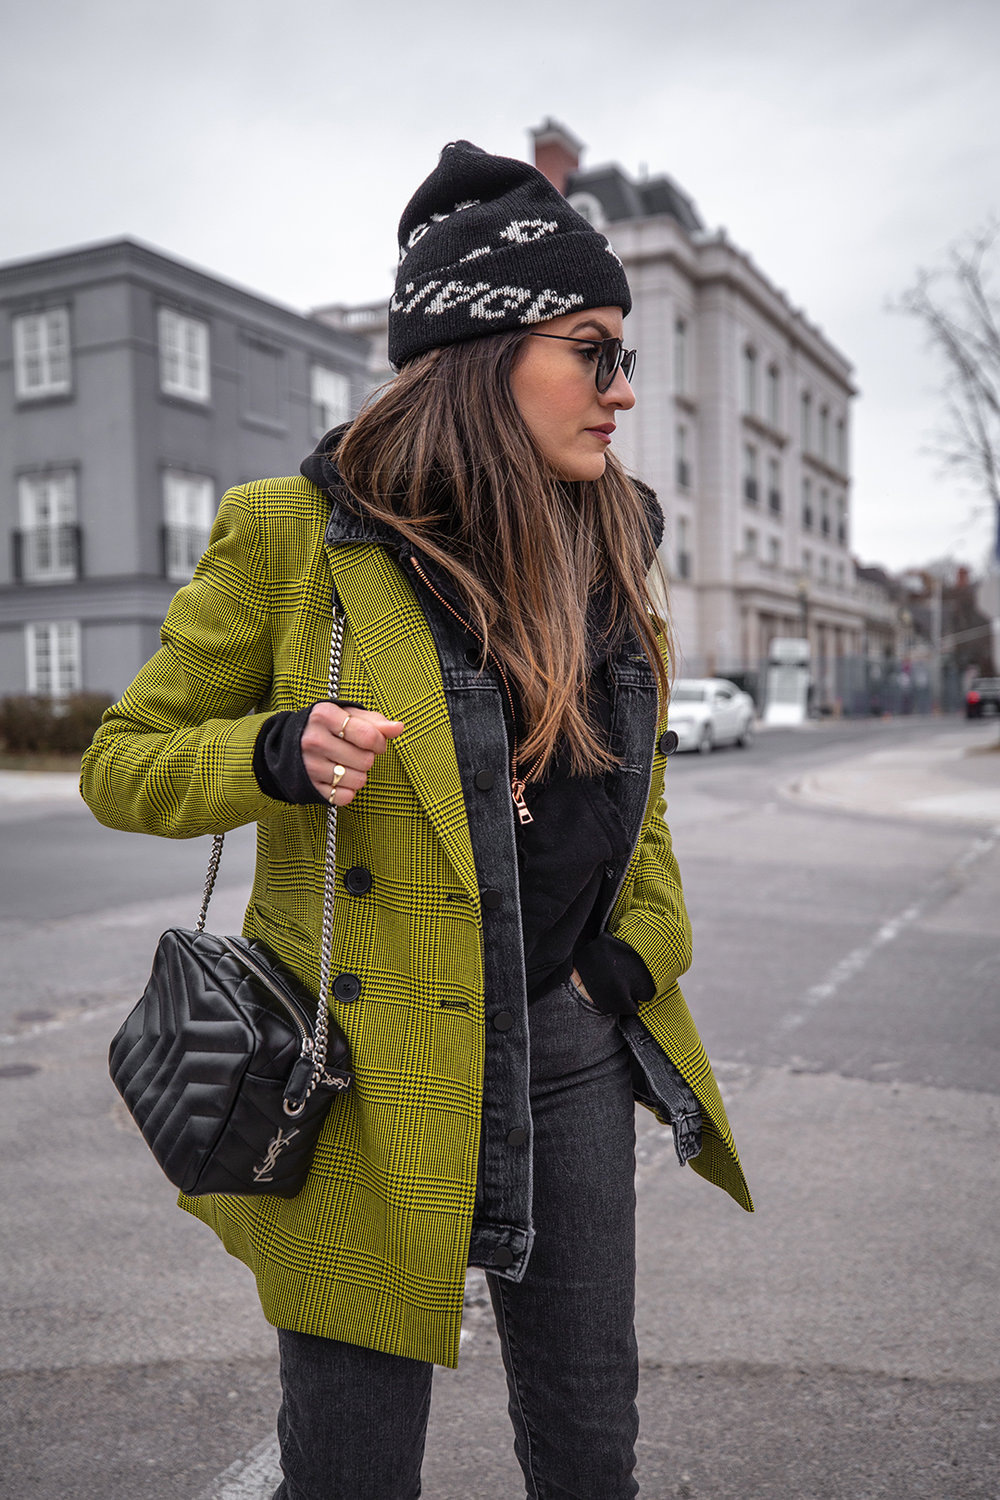 Nathalie Martin, Robert Rodriguez yellow plaid houndstooth blazer, Balenciaga logo beanie hat, Loewe velvet patent leather boots, grey jeans, Alexander Wang denim vest, Frank & Eileen hoodie, Saint Laurent LouLou bag, streetstyle woahstyle.com_6048.jpg